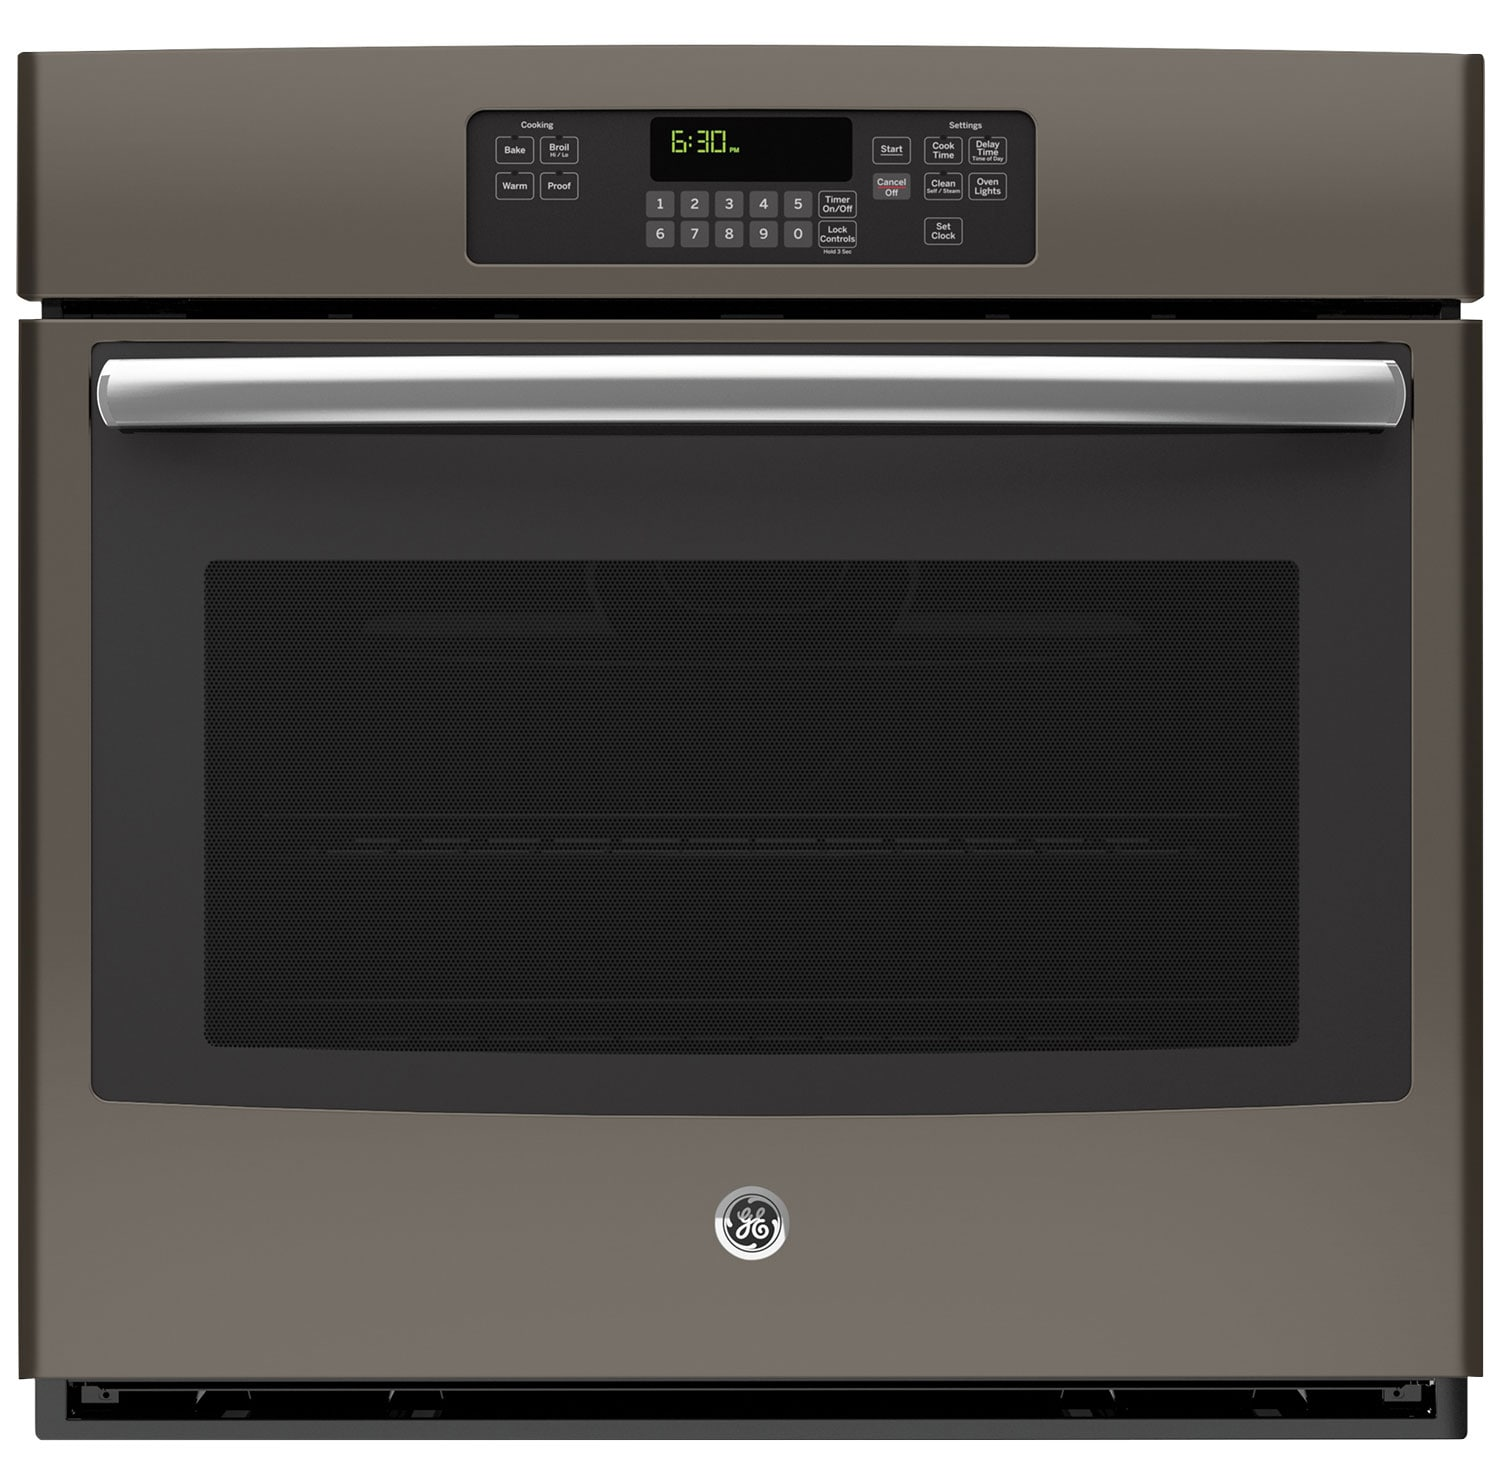 GE 5.0 Cu. Ft. Self-Cleaning Single Wall Oven – JT3000EJES